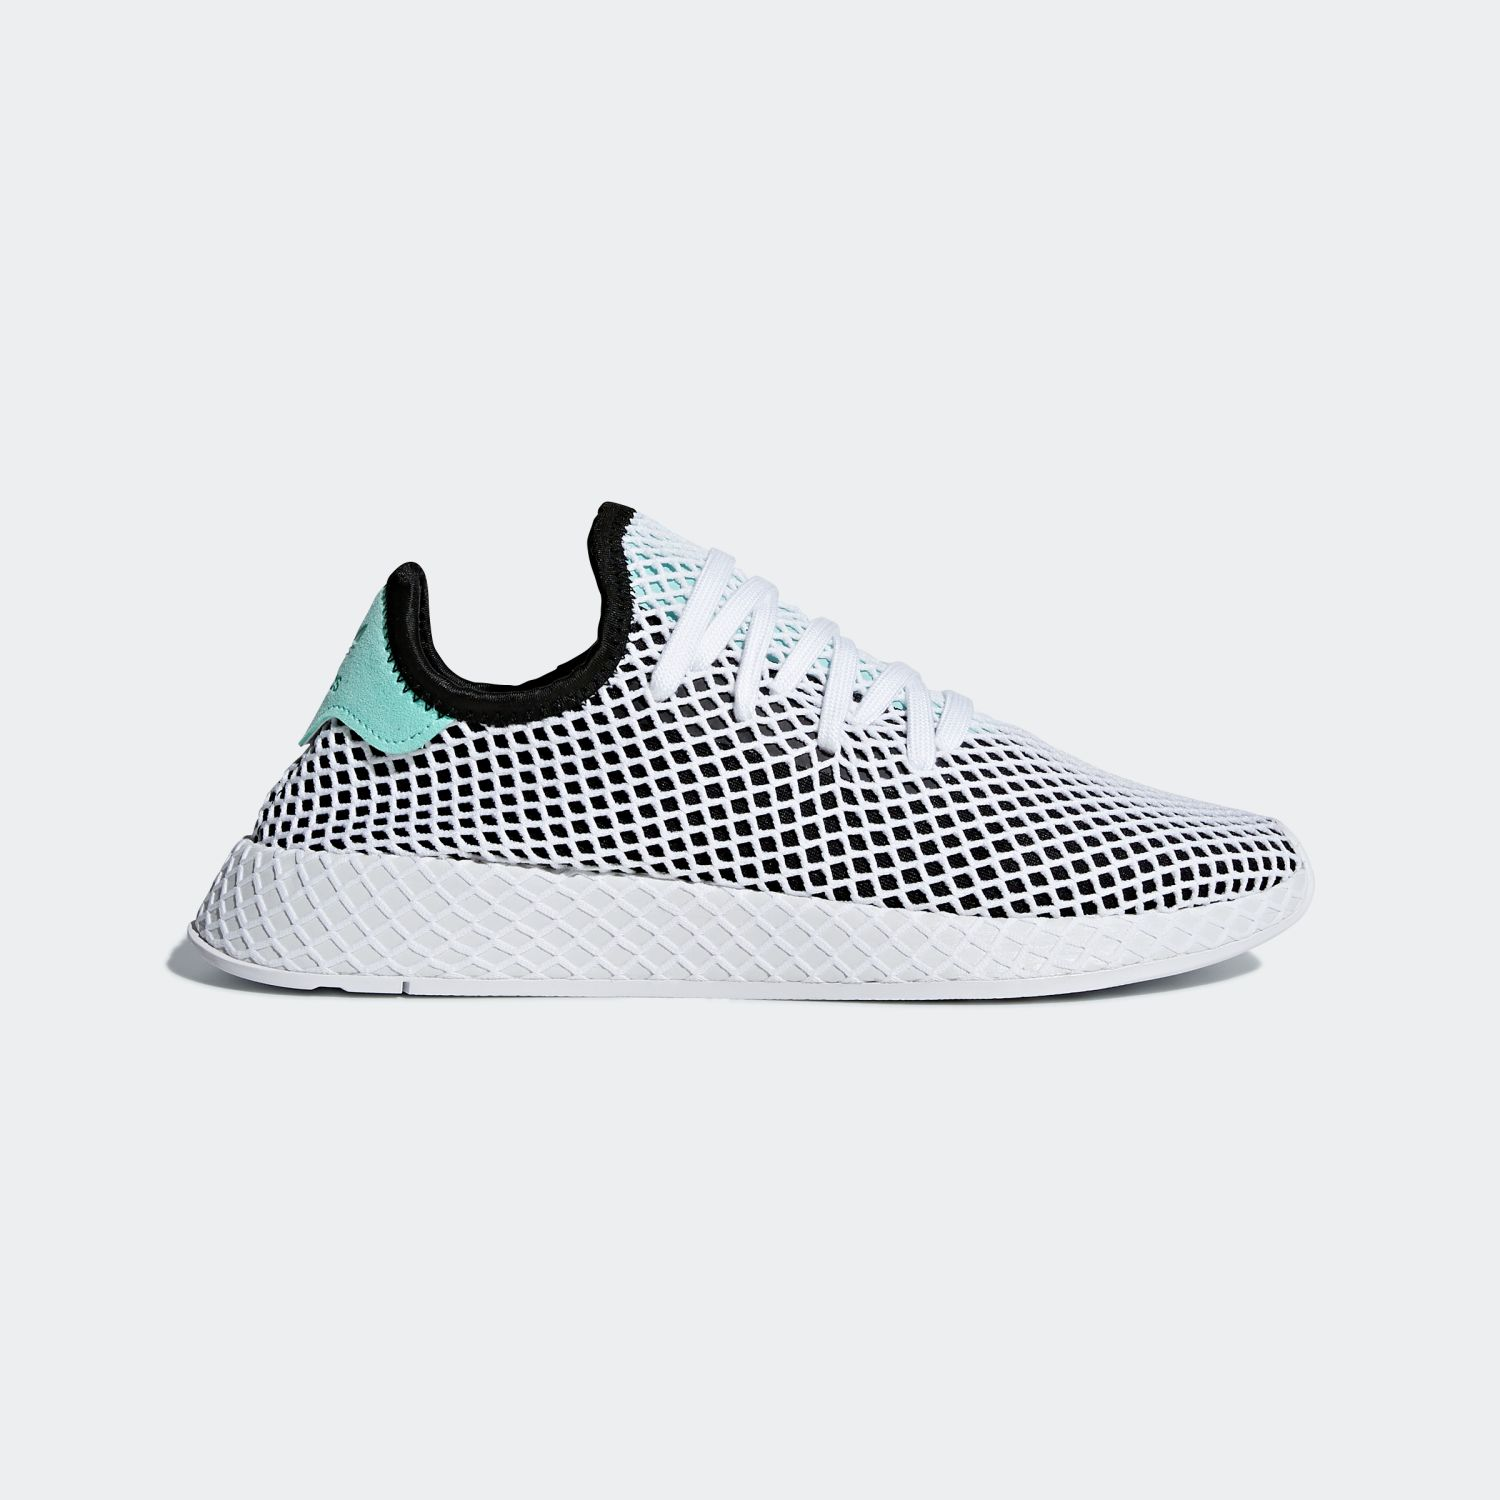 Deerupt Core Black Easy Green